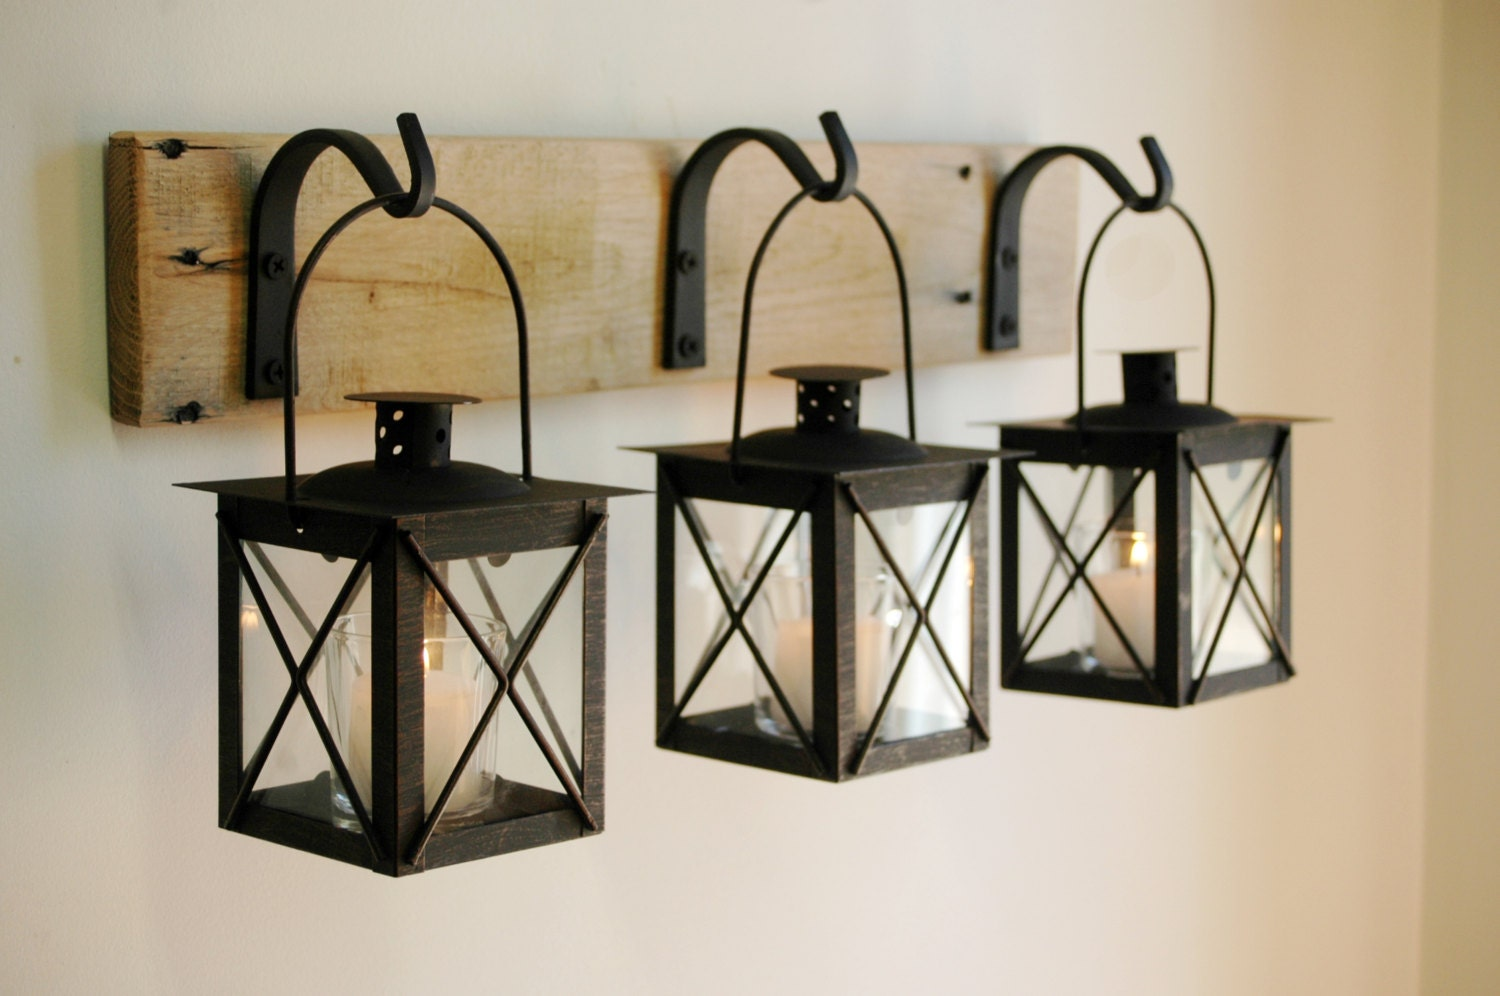 Home Decorative Item Beauteous Black Lantern Trio Wall Decor Home Decor Rustic Decor Review